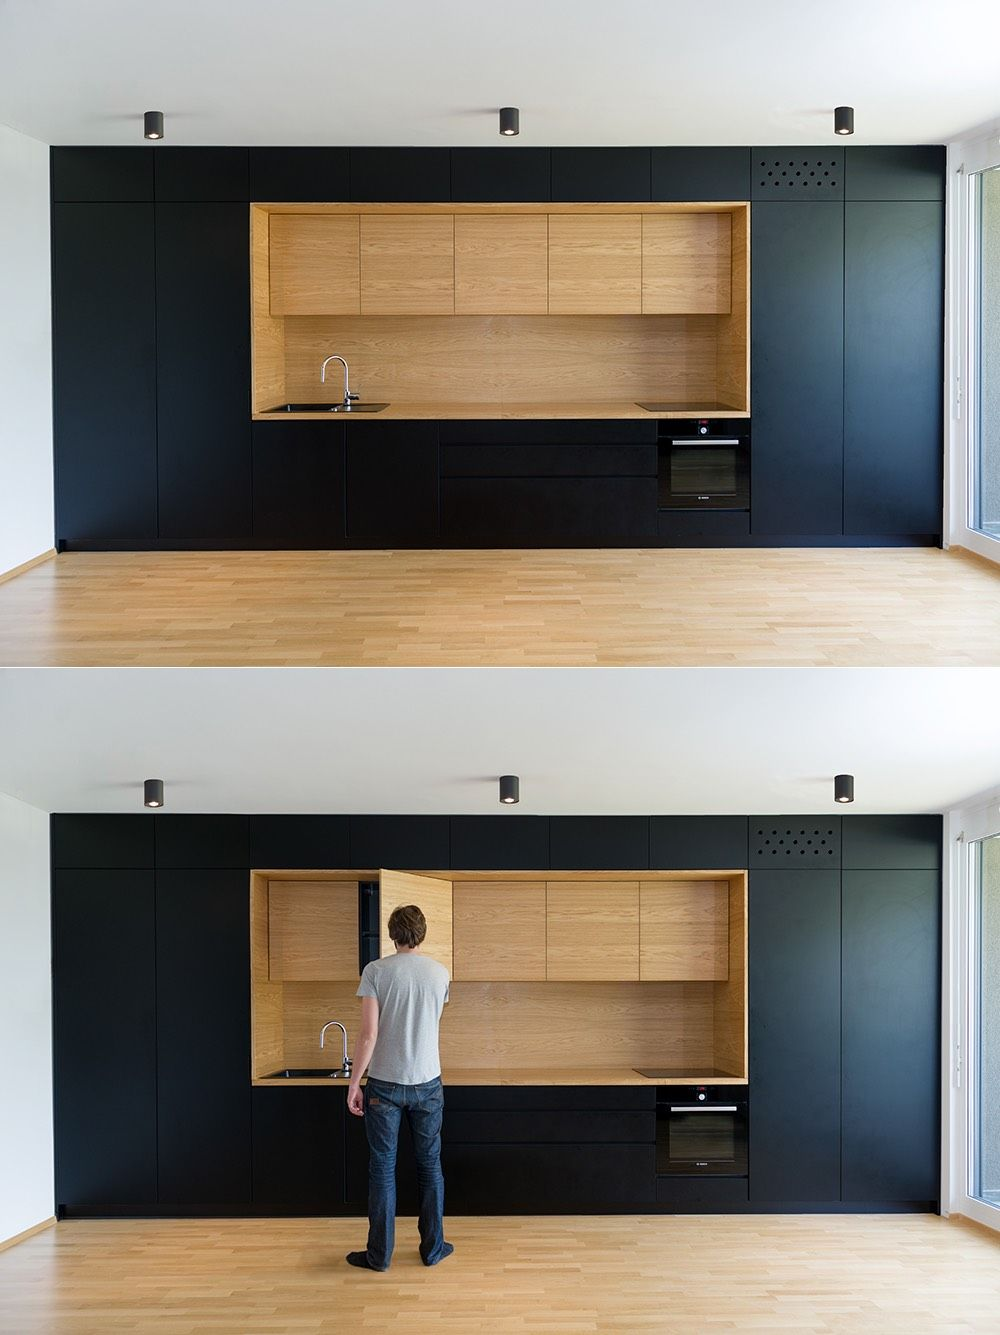 Black and wood as used here are entirely minimalist, with